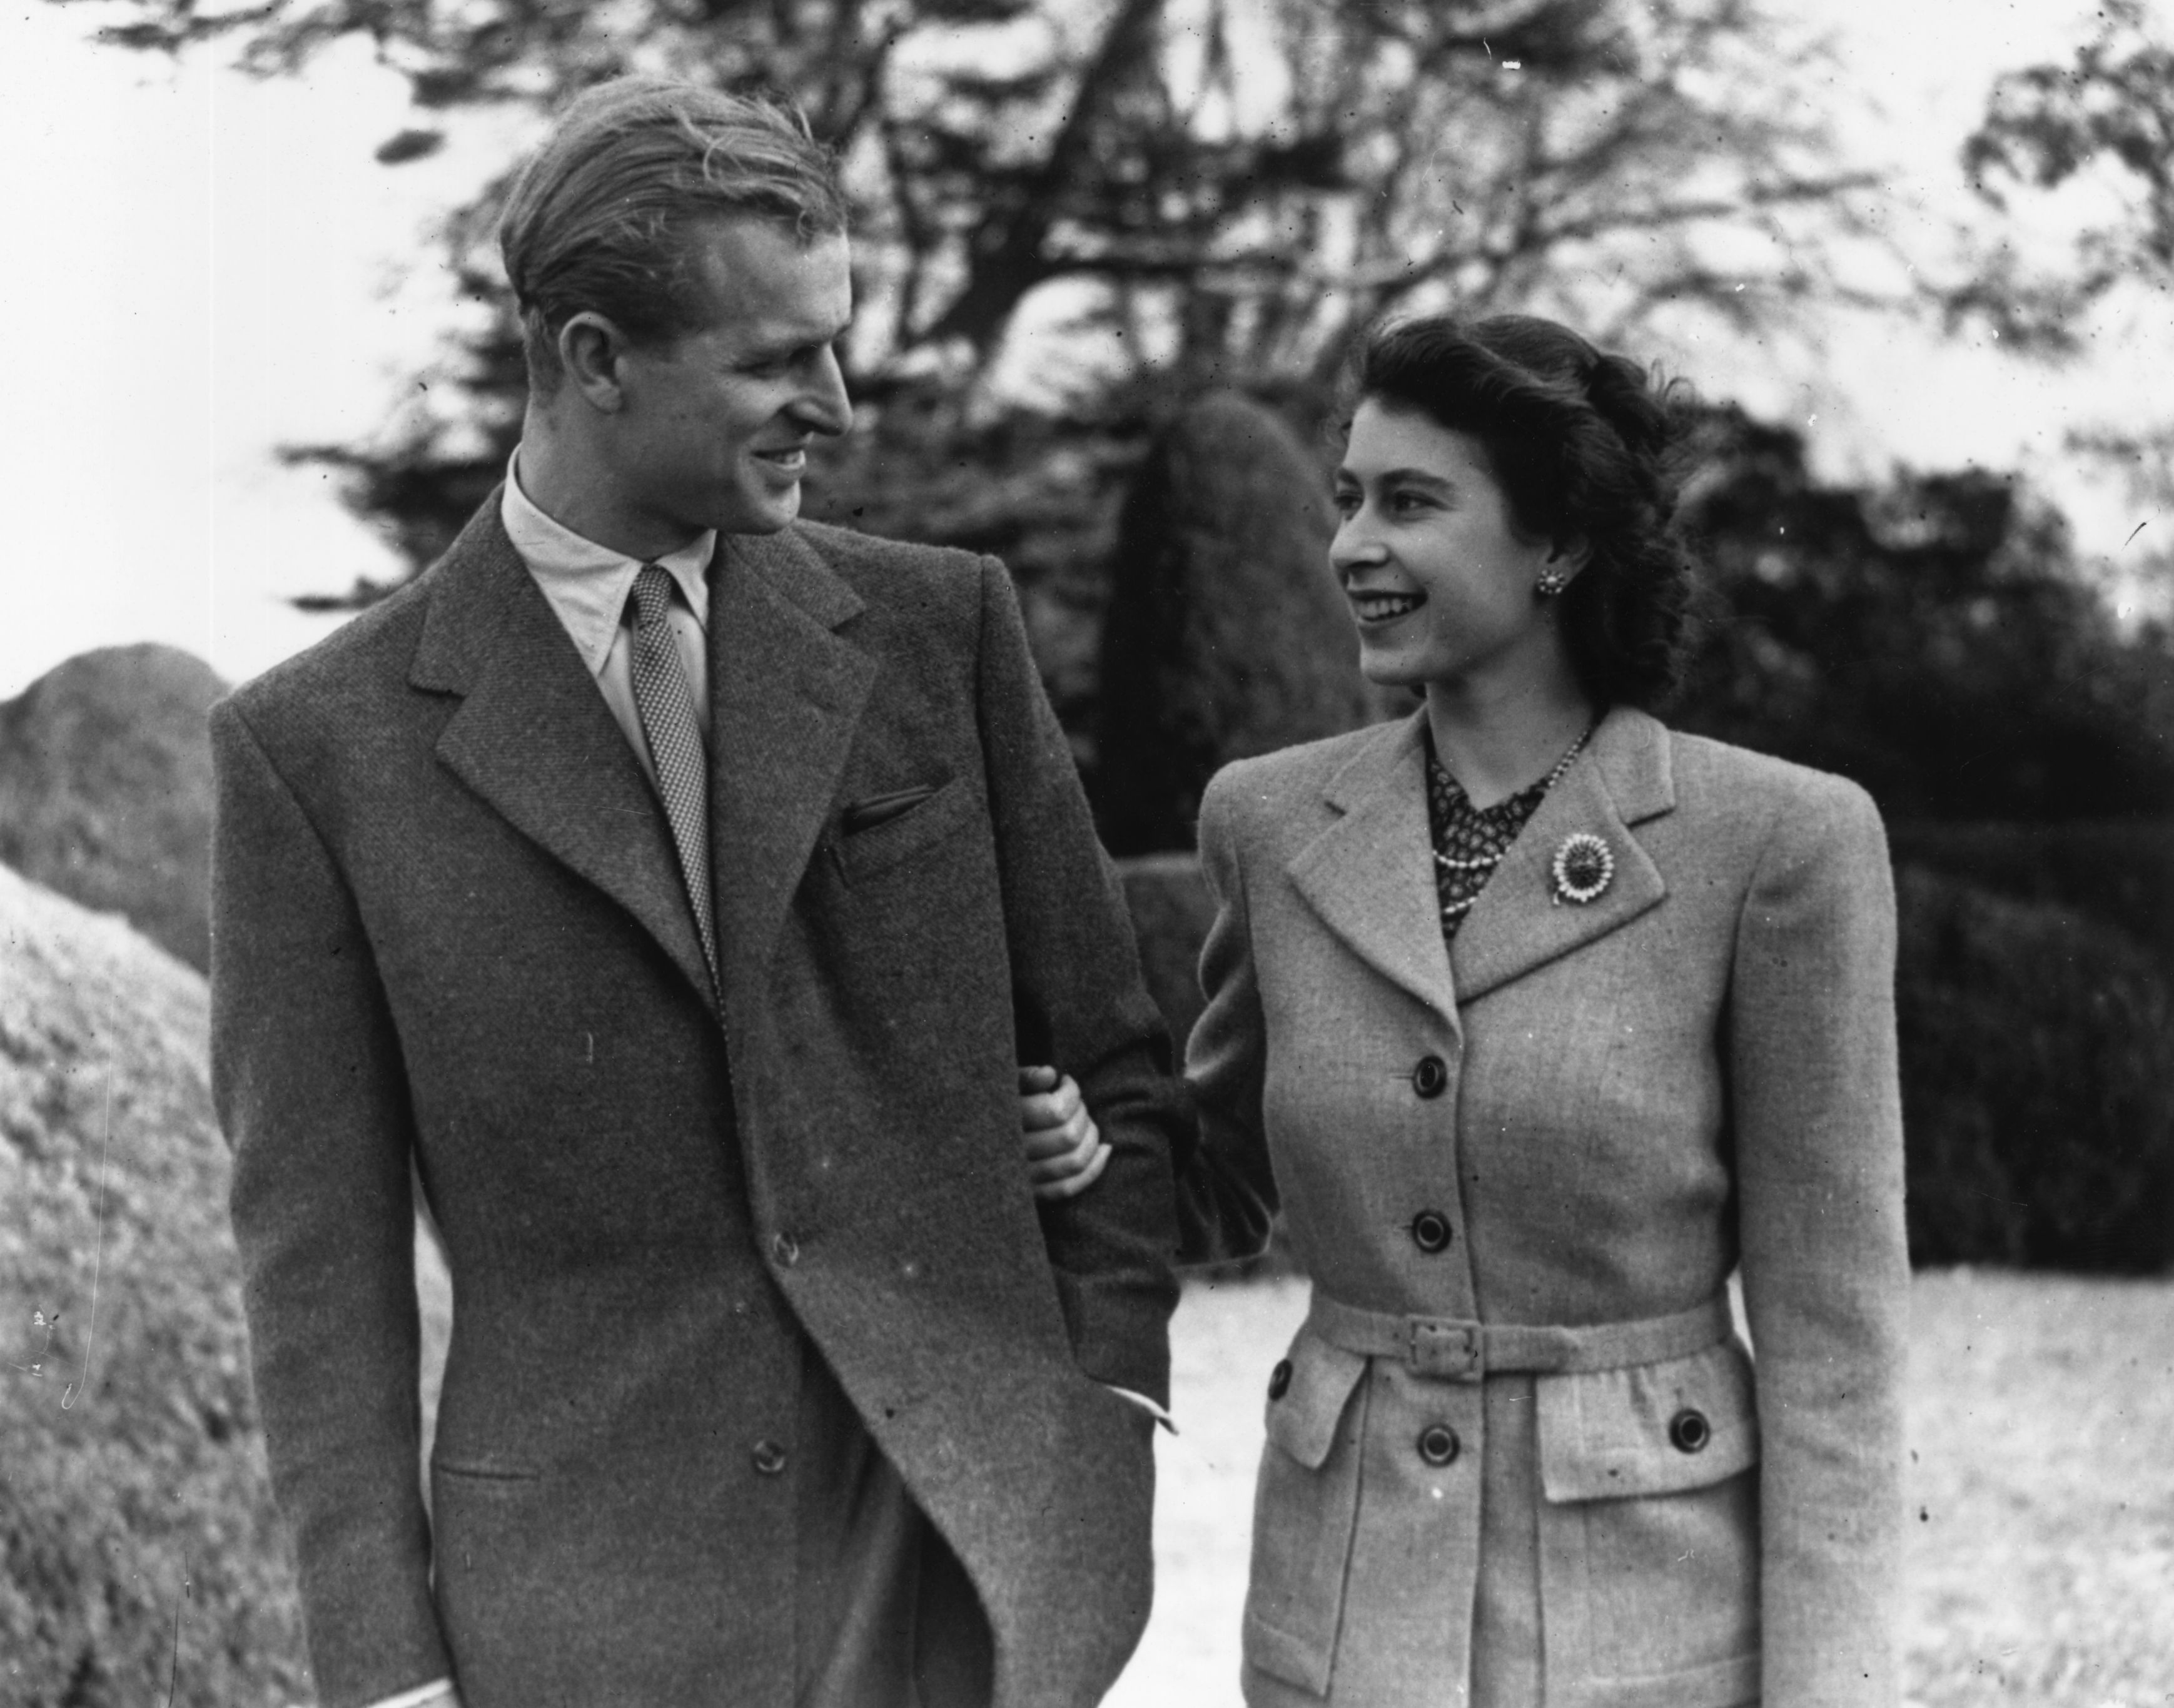 Princess Elizabeth and Prince Philip during their honeymoon at Broadlands, Romsey, Hampshire in 1947 | Source: Getty Images